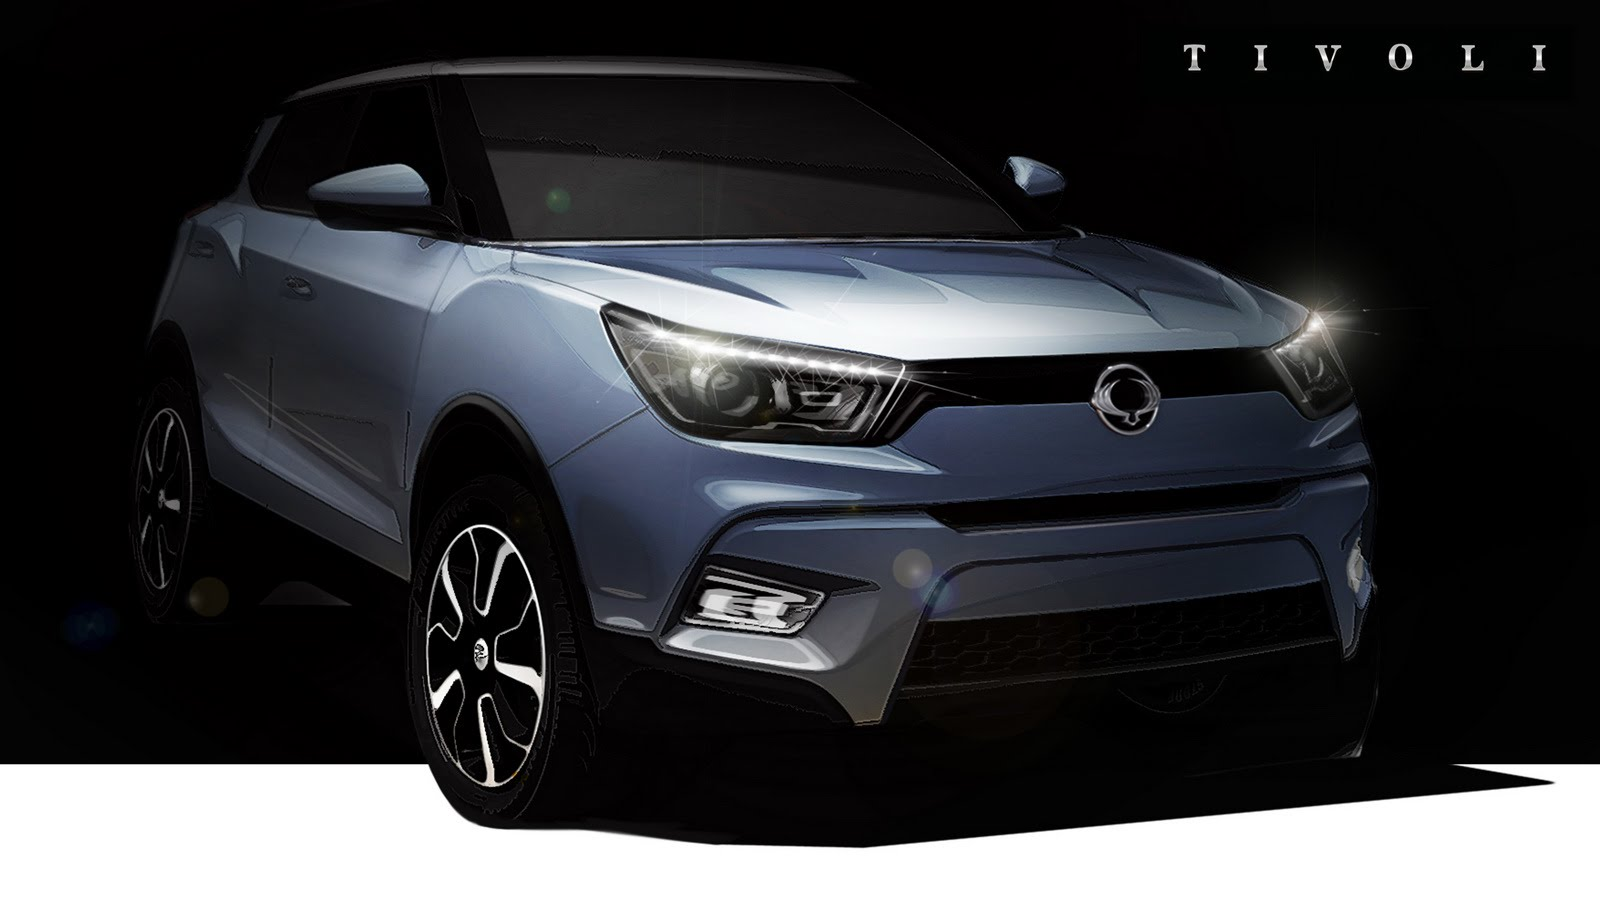 ssangyong kyron ii 2016 images #6